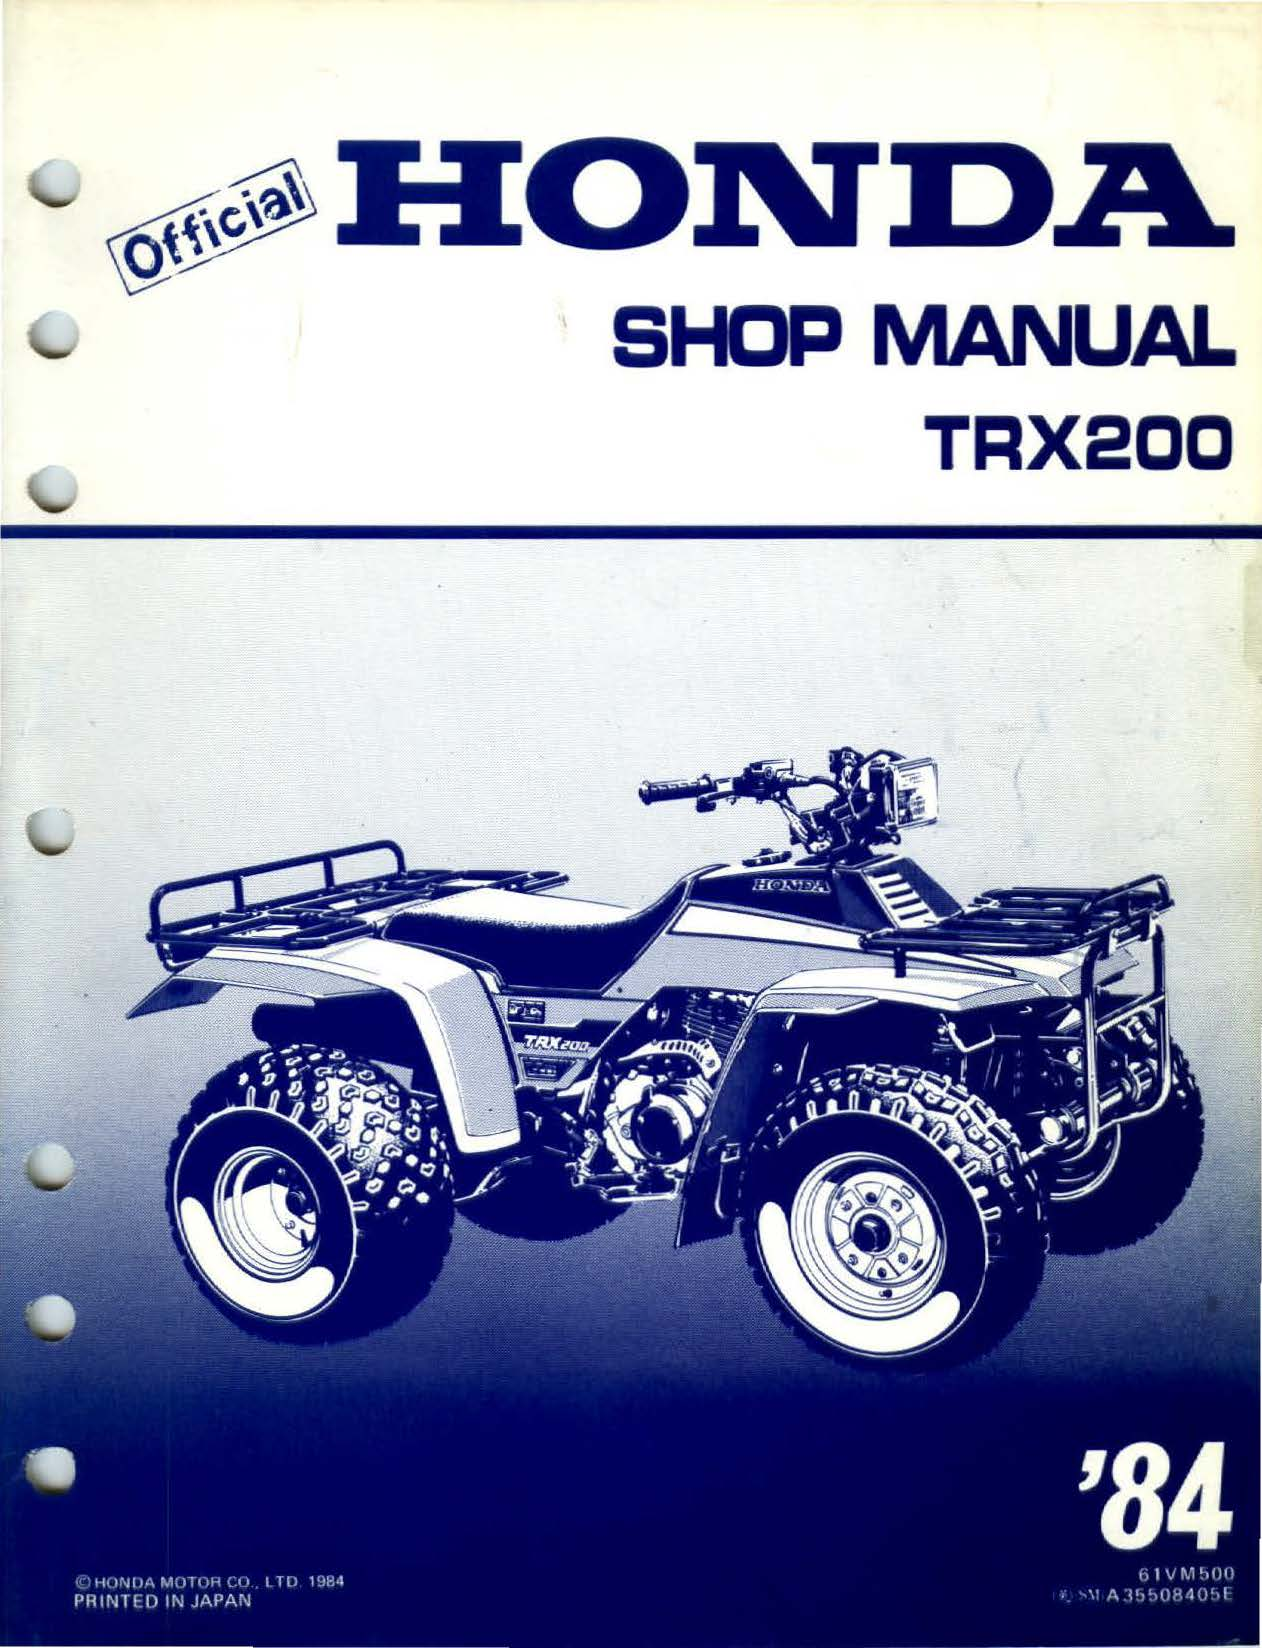 Workshopmanual for Honda TRX200 (1984)